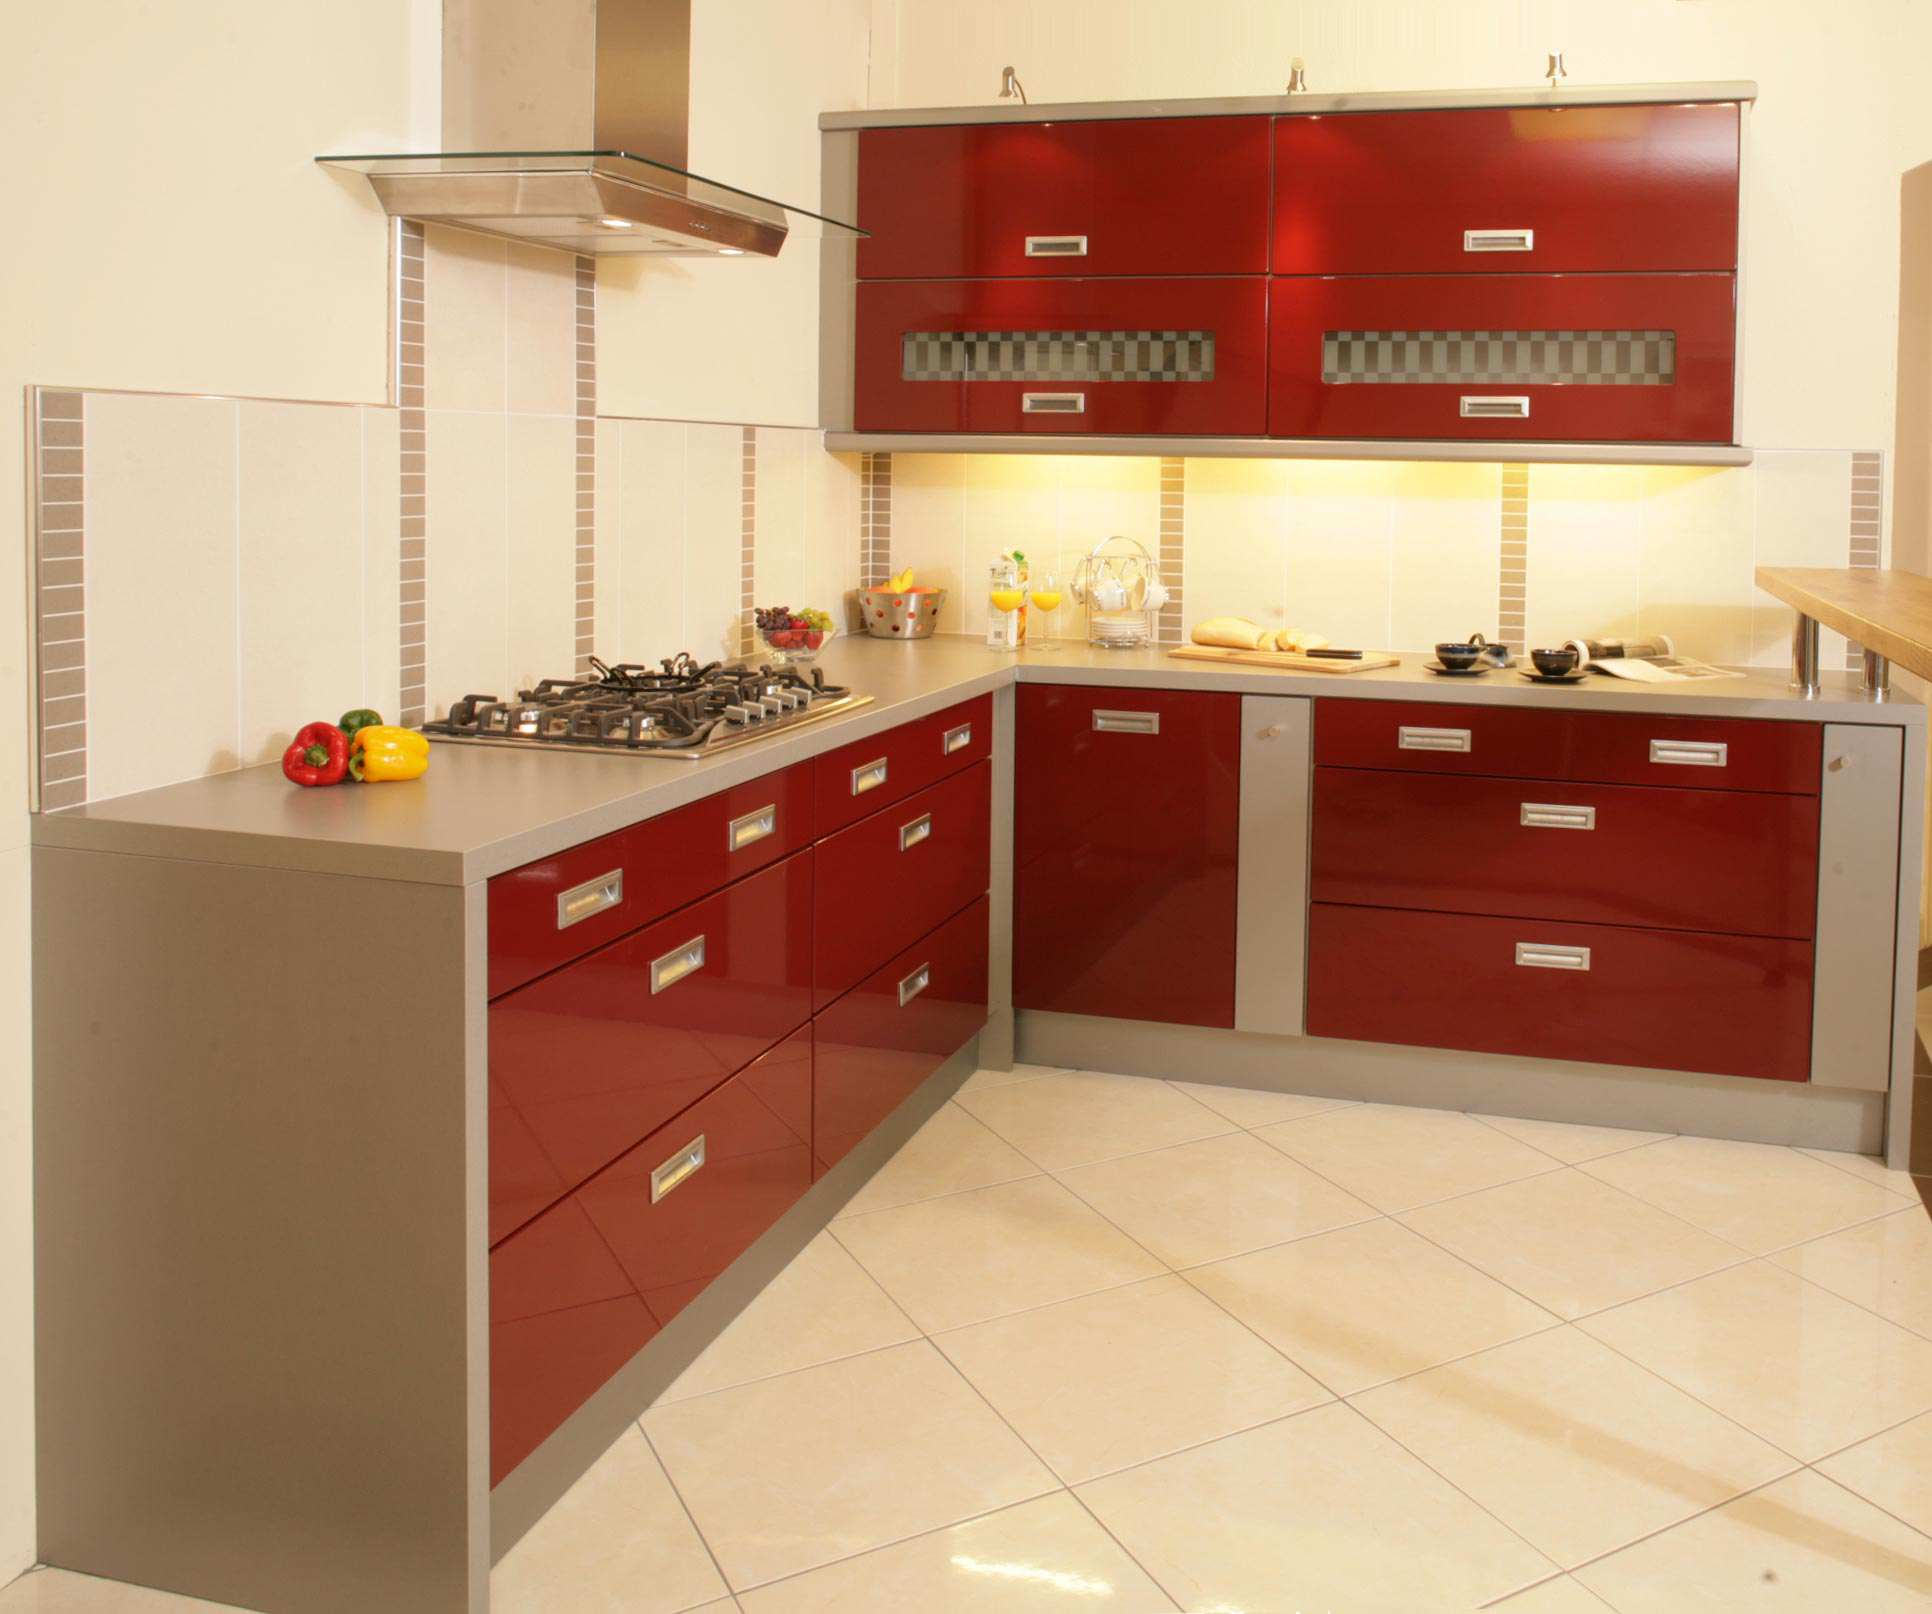 The kitchen is heart of the house where the lady spends a majority of her time.  The Home Makers Team knows that this is one of the most important spaces of the house. Keeping this in mind, Home Makers Interior Designers & Decorators Pvt. Ltd. are offering 70% discount on designing charges of the kitchen before 31st March 2017.  Subscribe to us here: https://homemakersinterior.nowfloats.com/ Visit us at: www.homemakersinterior.com